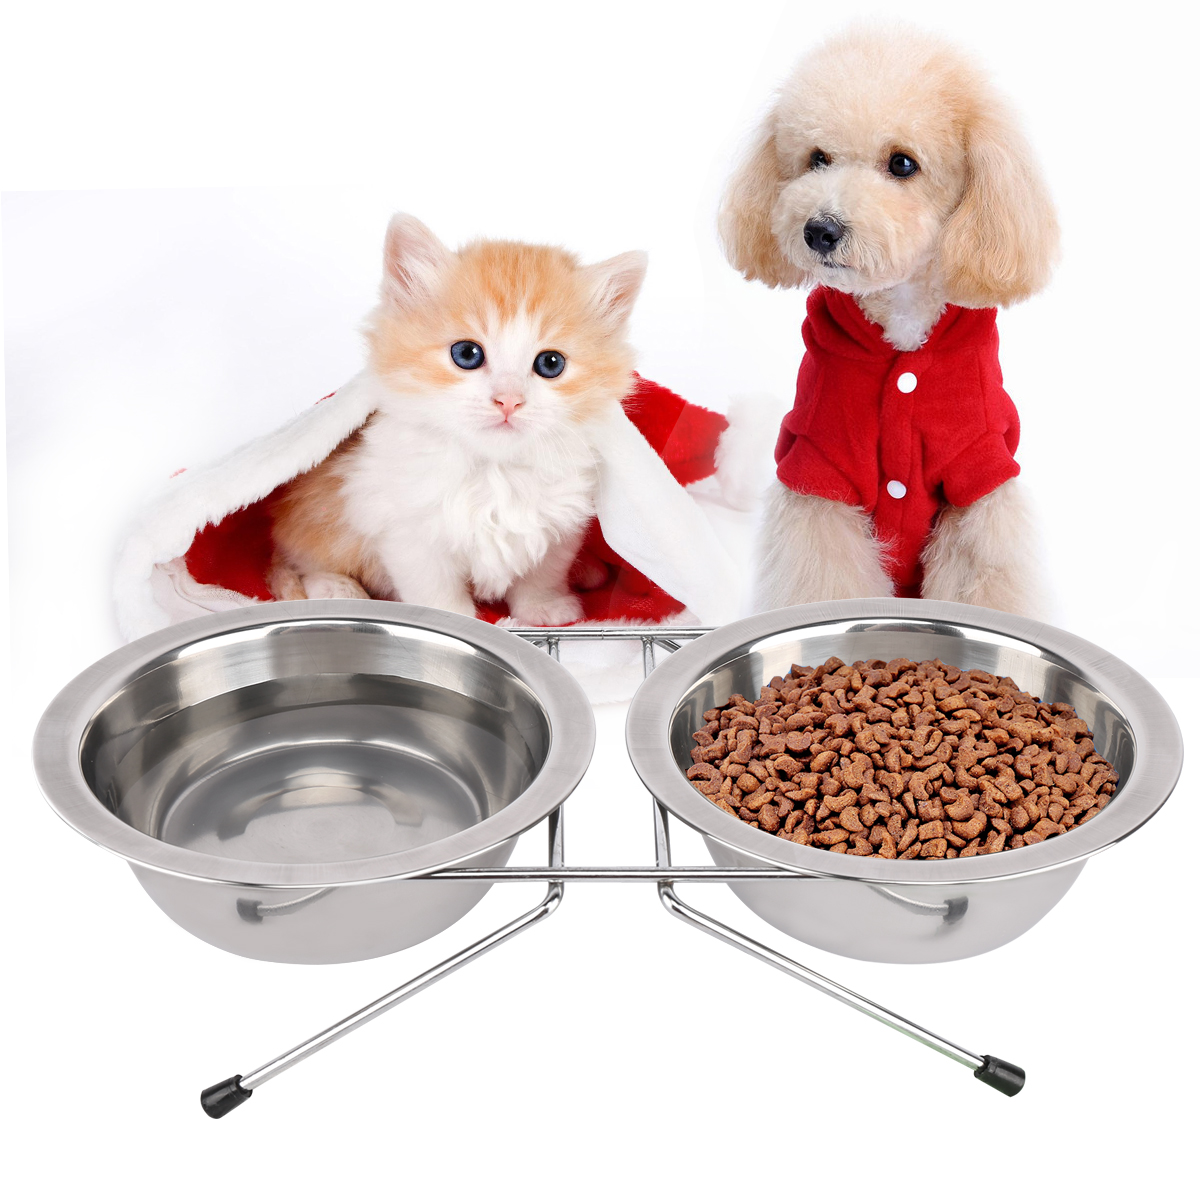 Stainless Steel Pet Bowl Double Dog Cat Food and Water Feeder Dish with Iron Stand